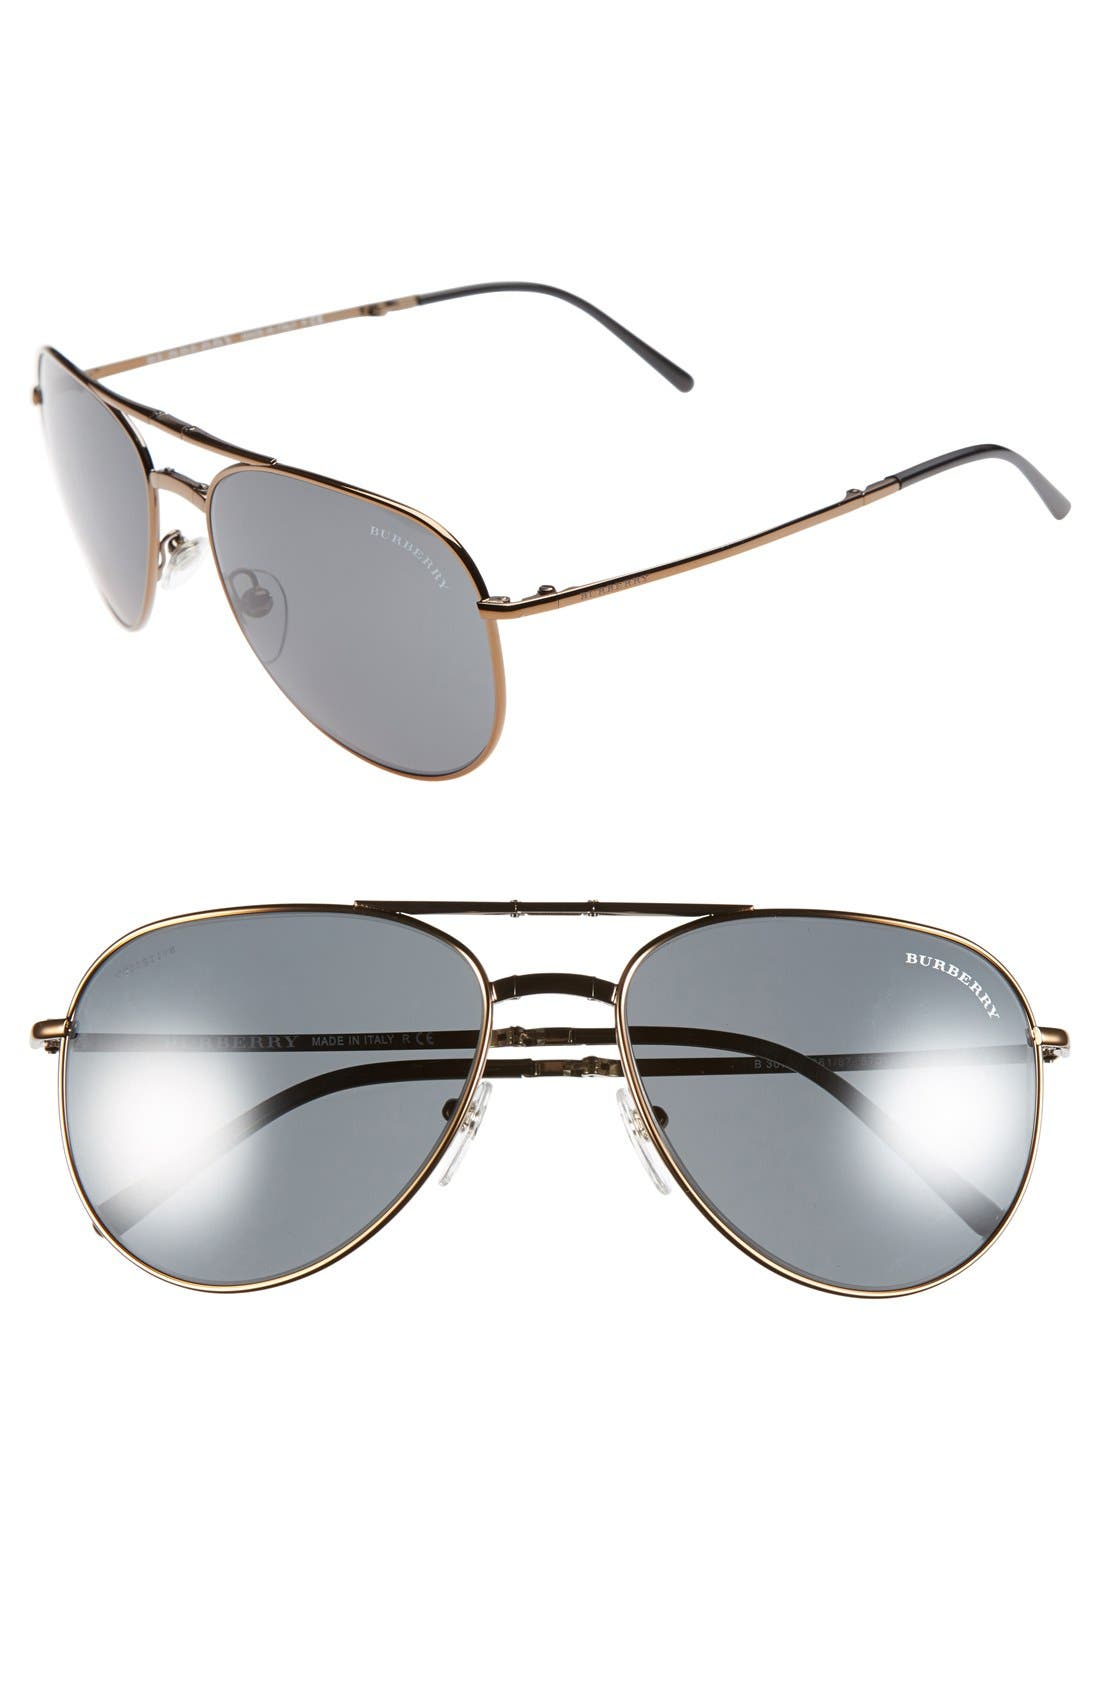 Alternate Image 1 Selected - Burberry 'Splash' 57mm Foldable Aviator Sunglasses